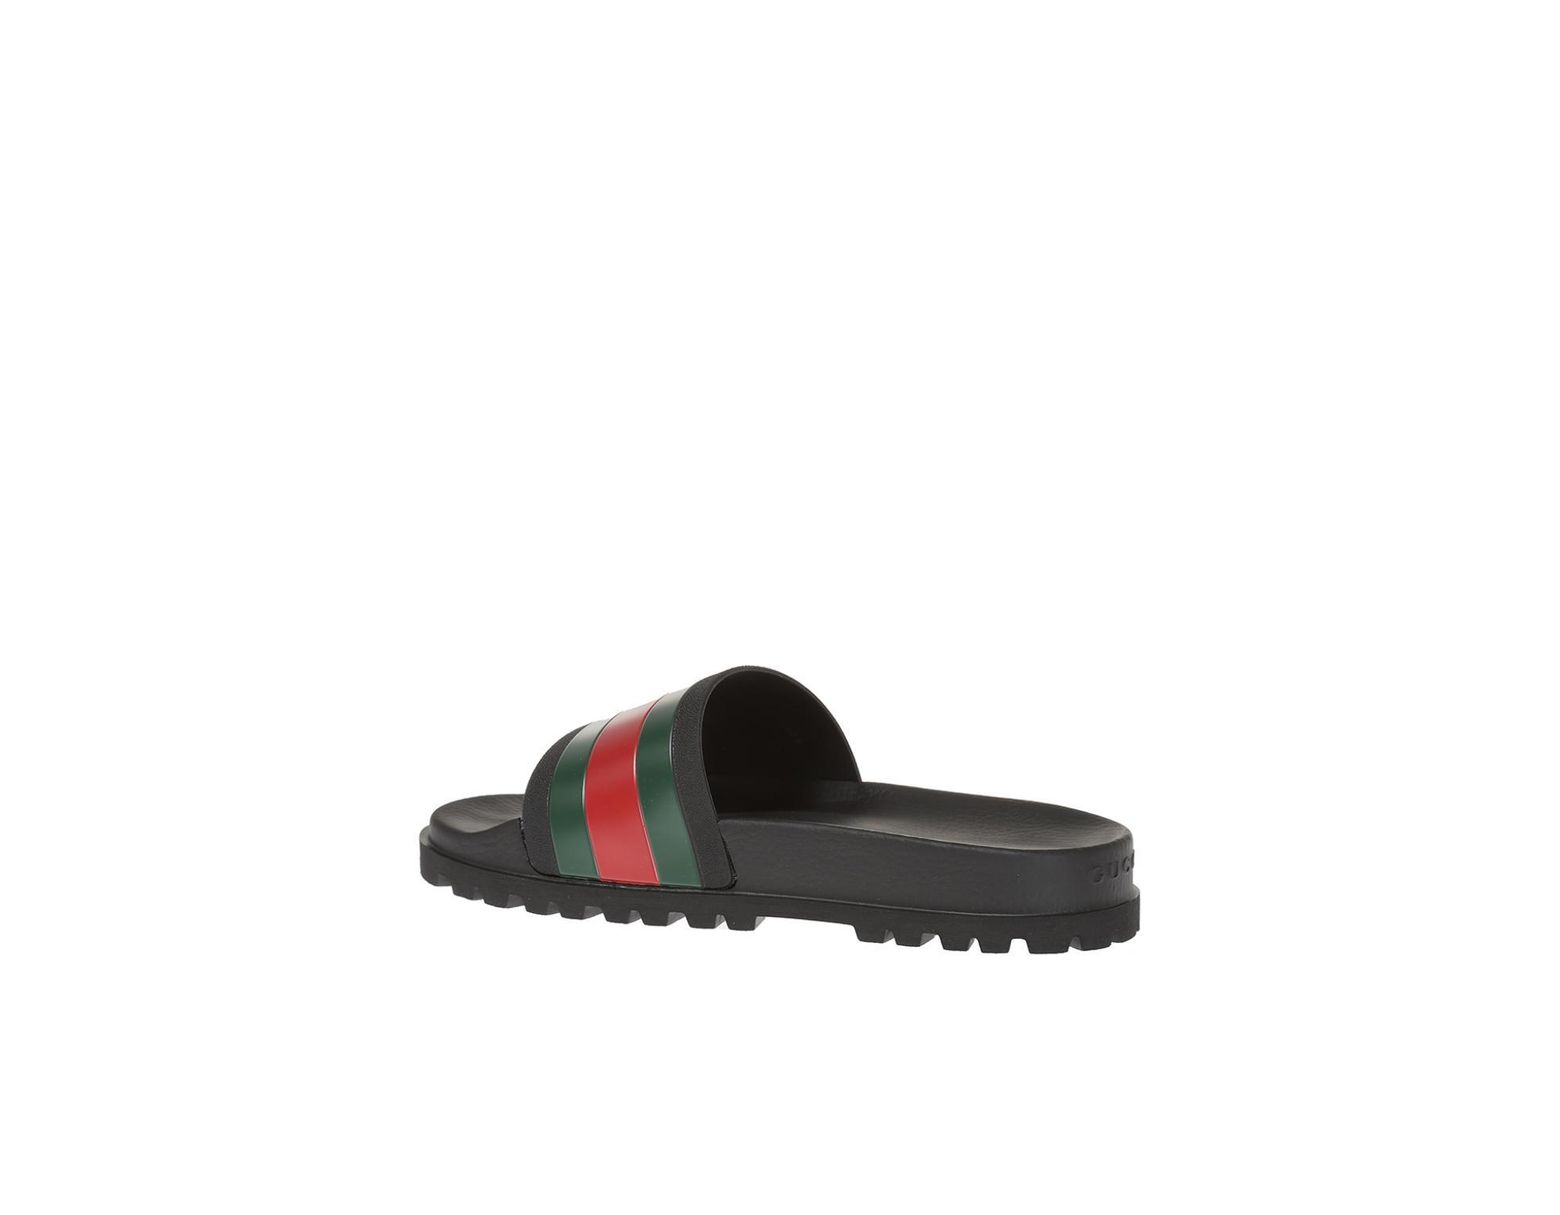 77d214befe07 Lyst - Gucci Striped Web Rubber Slides in Black for Men - Save 30%